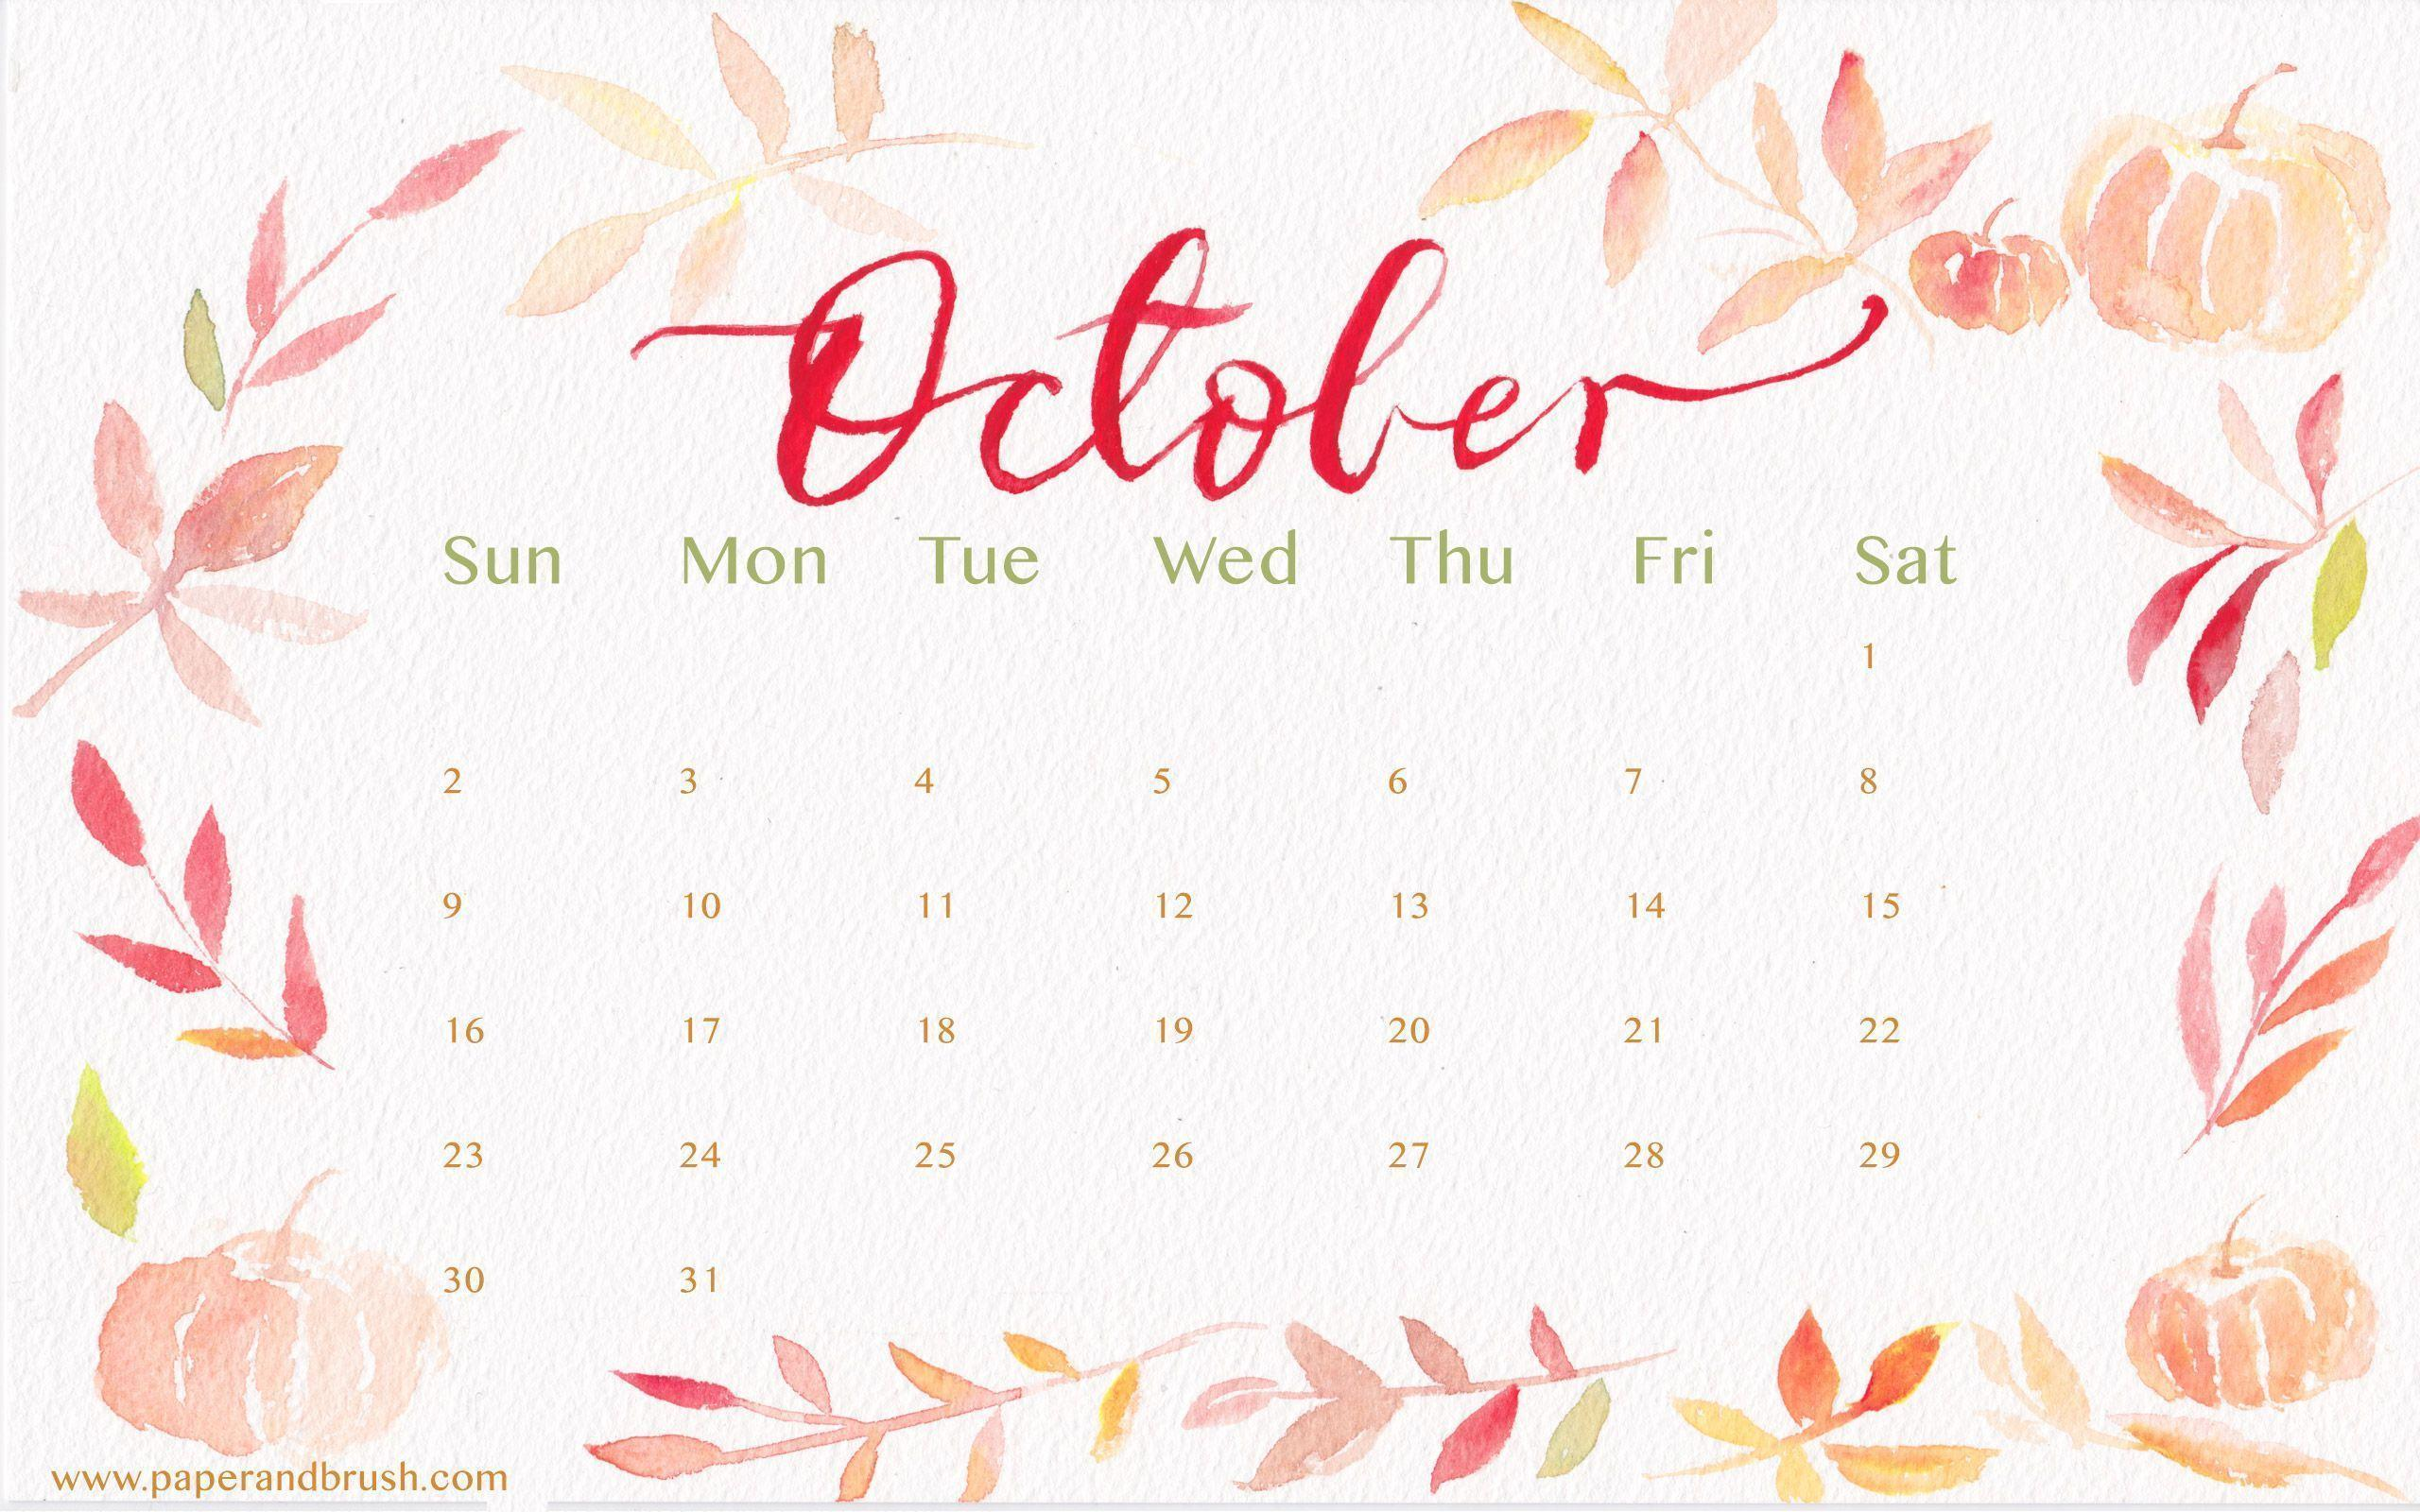 Calendar Background For Desktop : Desktop wallpapers calendar october wallpaper cave